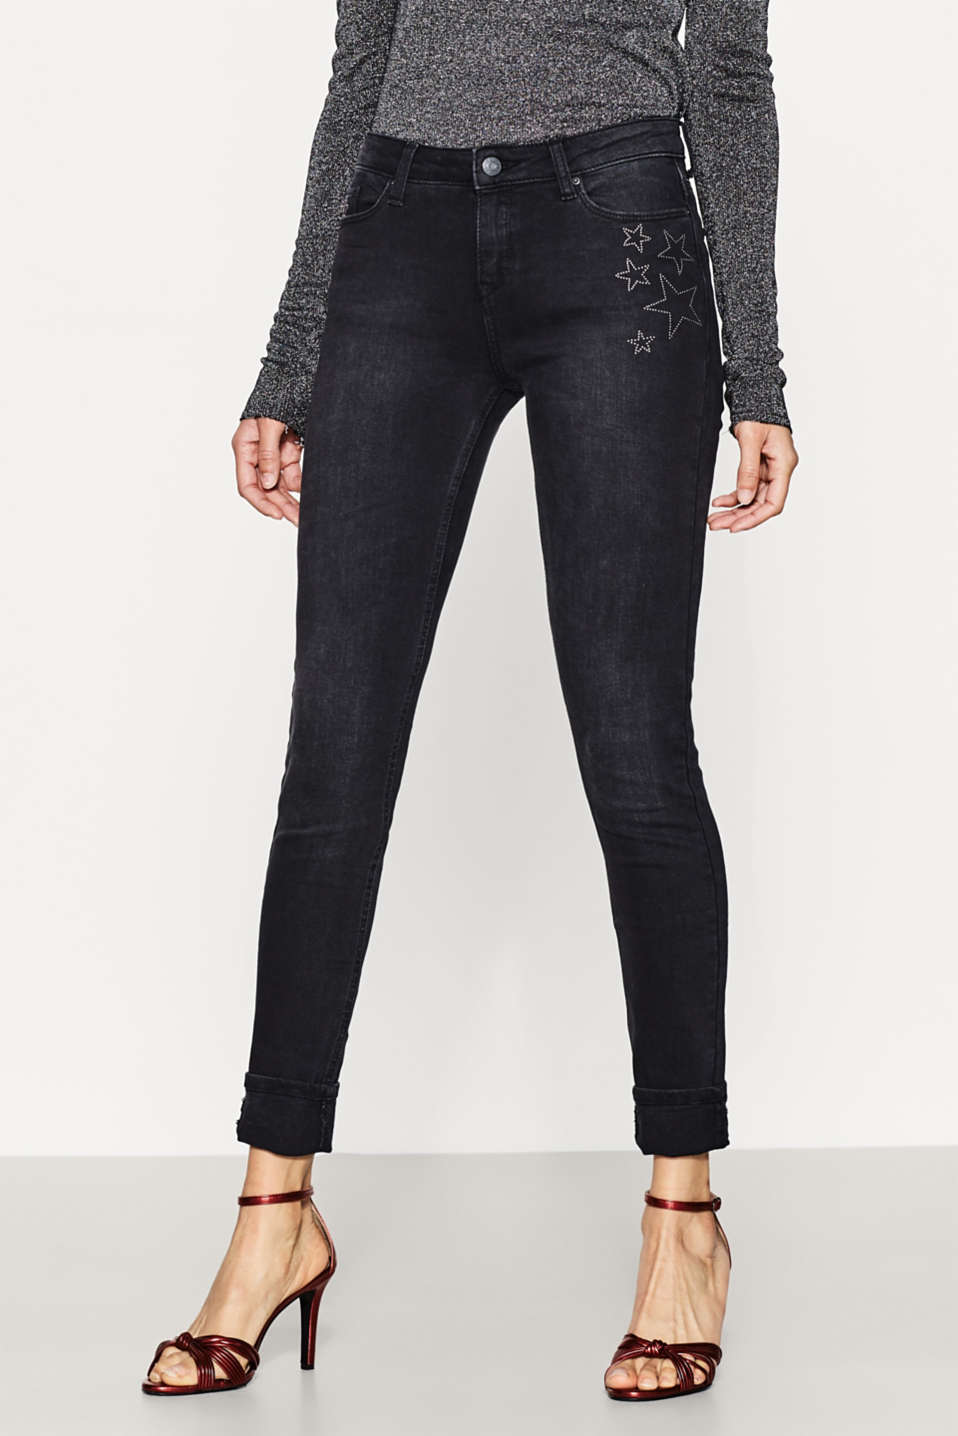 Esprit - Stretch jeans with star studs